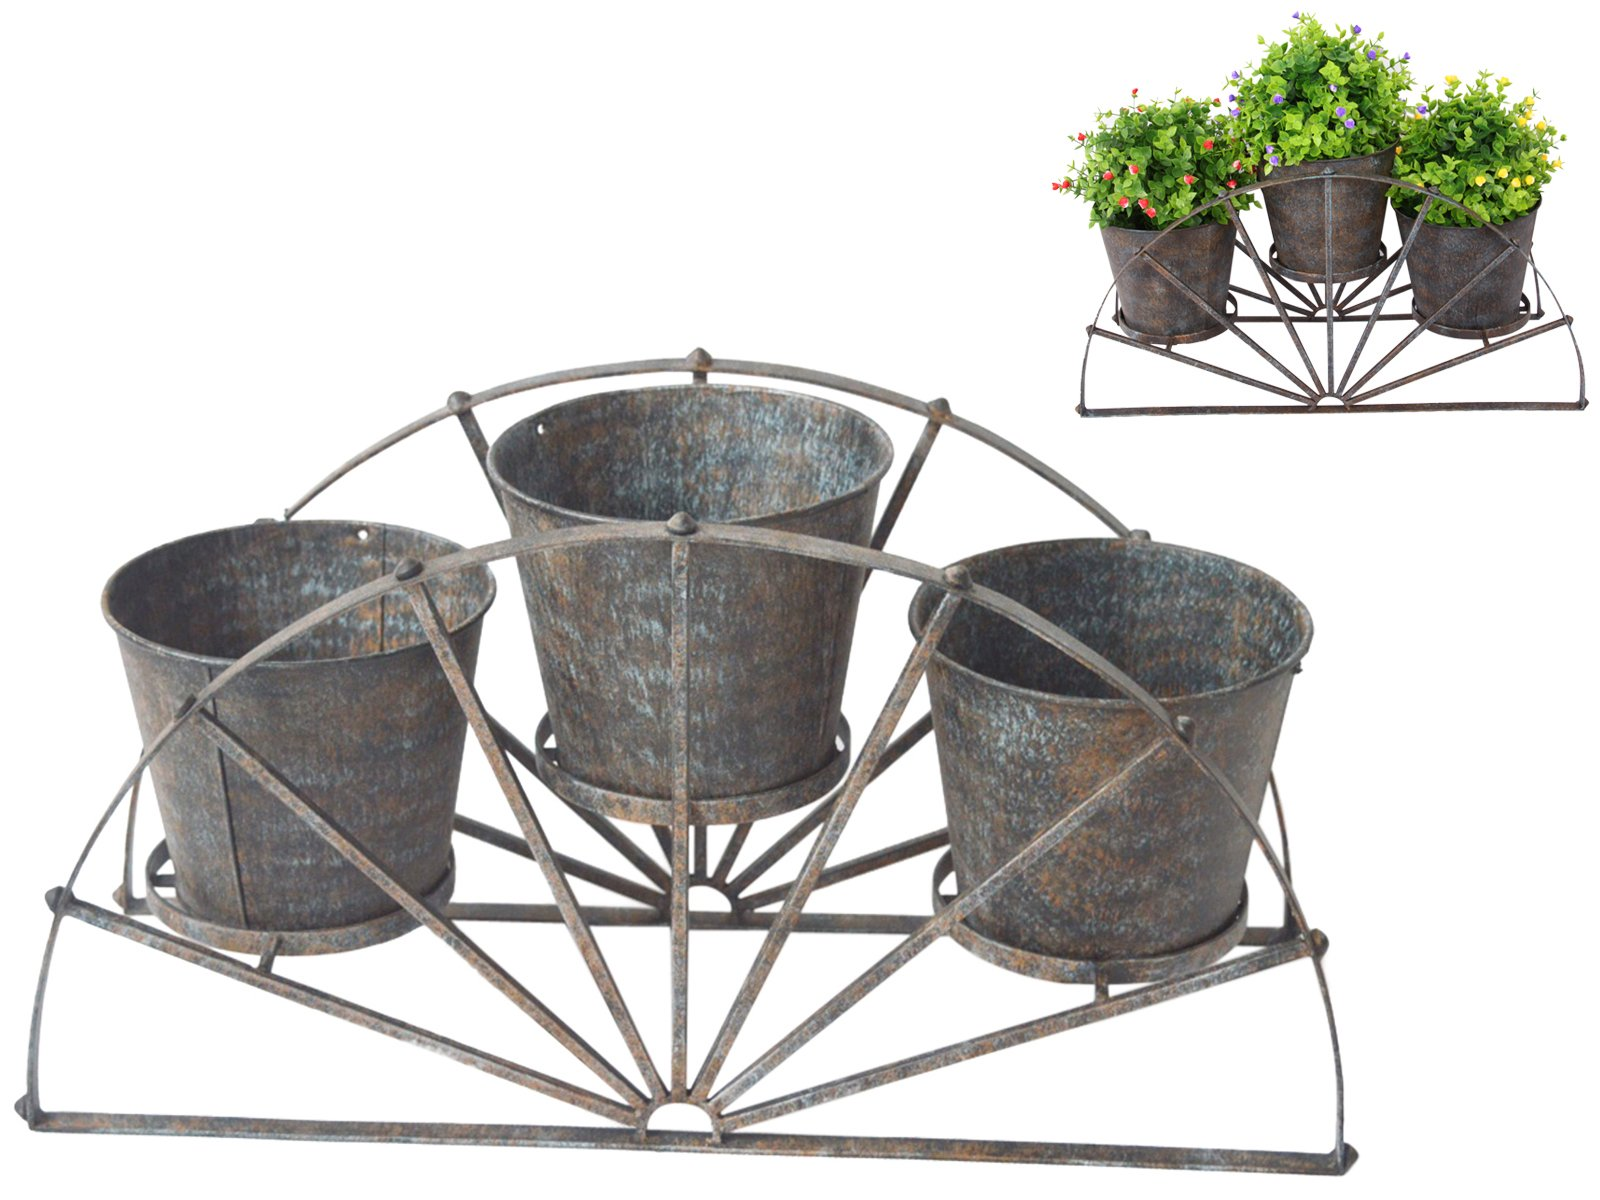 UNBRAND 55cm Triple Pot Holder in Metal Vintage Wagon Wheel Decor by unbrand (Image #1)